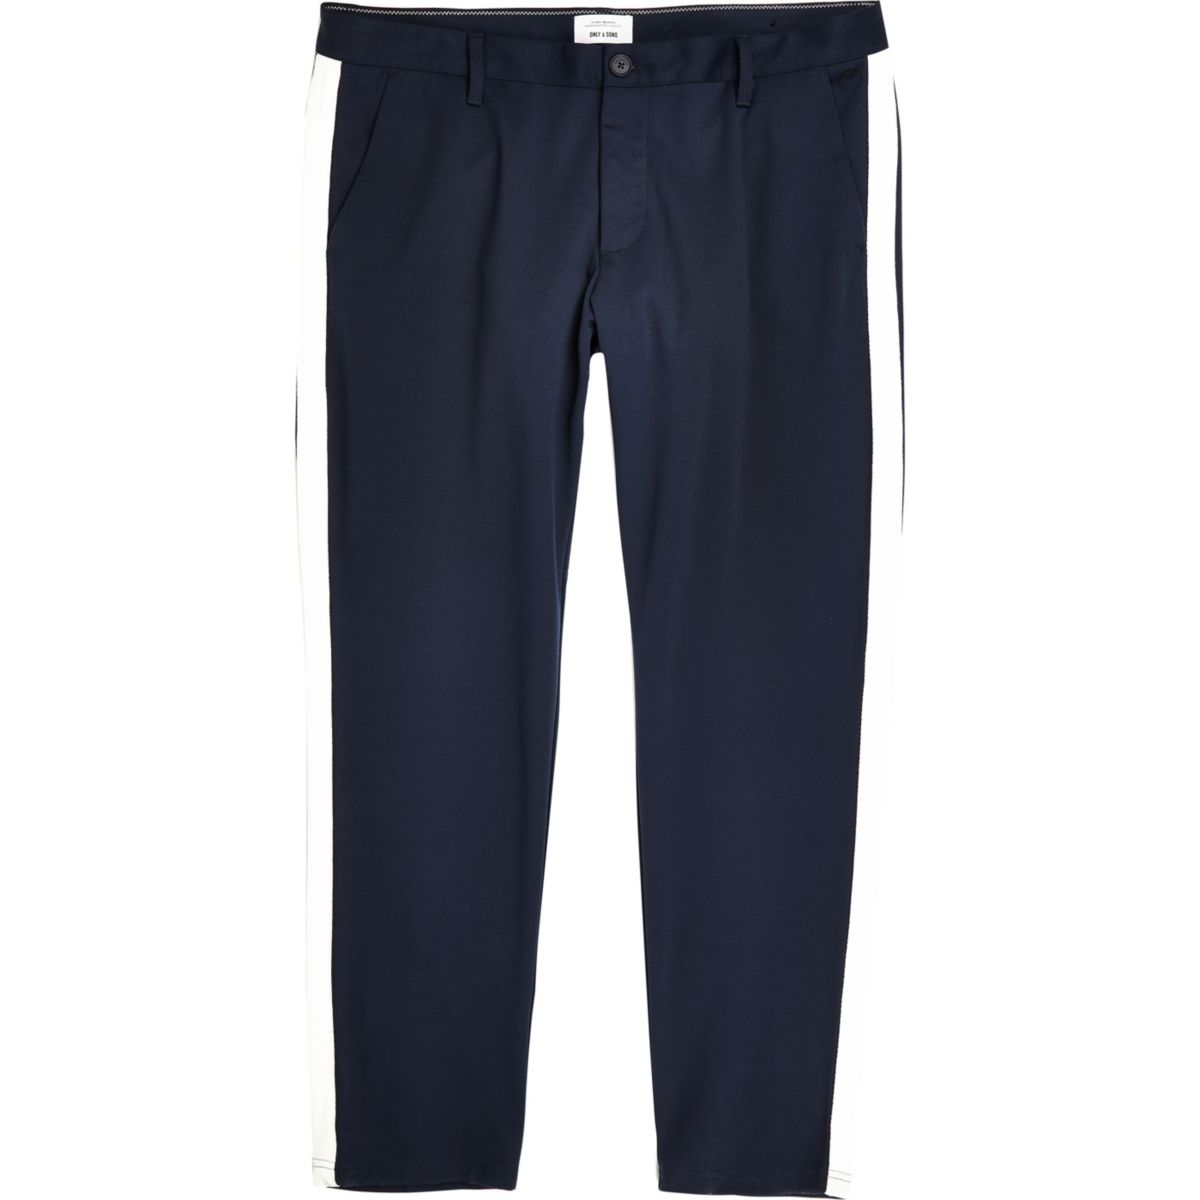 Only & Sons Big & Tall navy tape pants